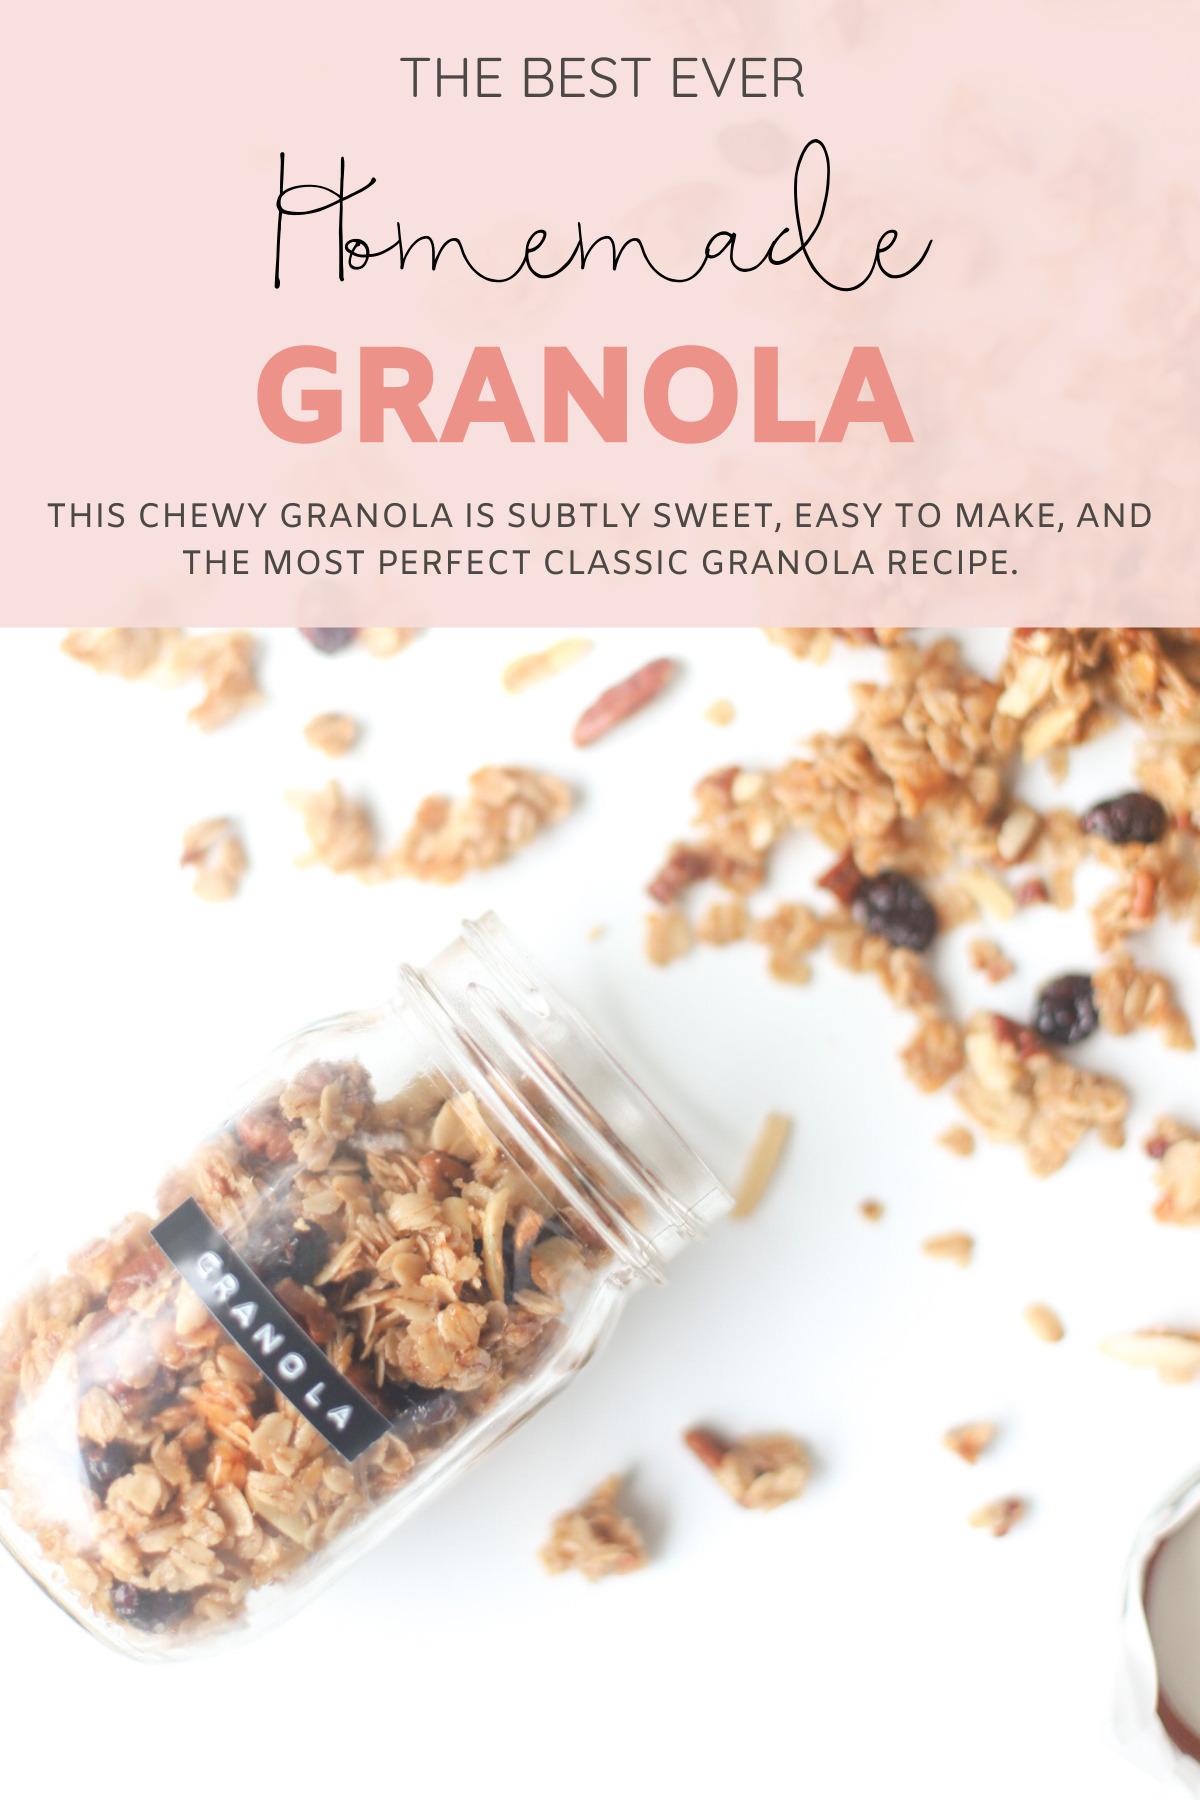 Homemade Classic Granola - Our Favorite Chewy, Cookie-Like Go-To Granola - Add in Your Favorite Nuts, Seeds, and Dried Fruit to Make this granola recipe totally customized! | @glitterinclexi | GLITTERINC.COM